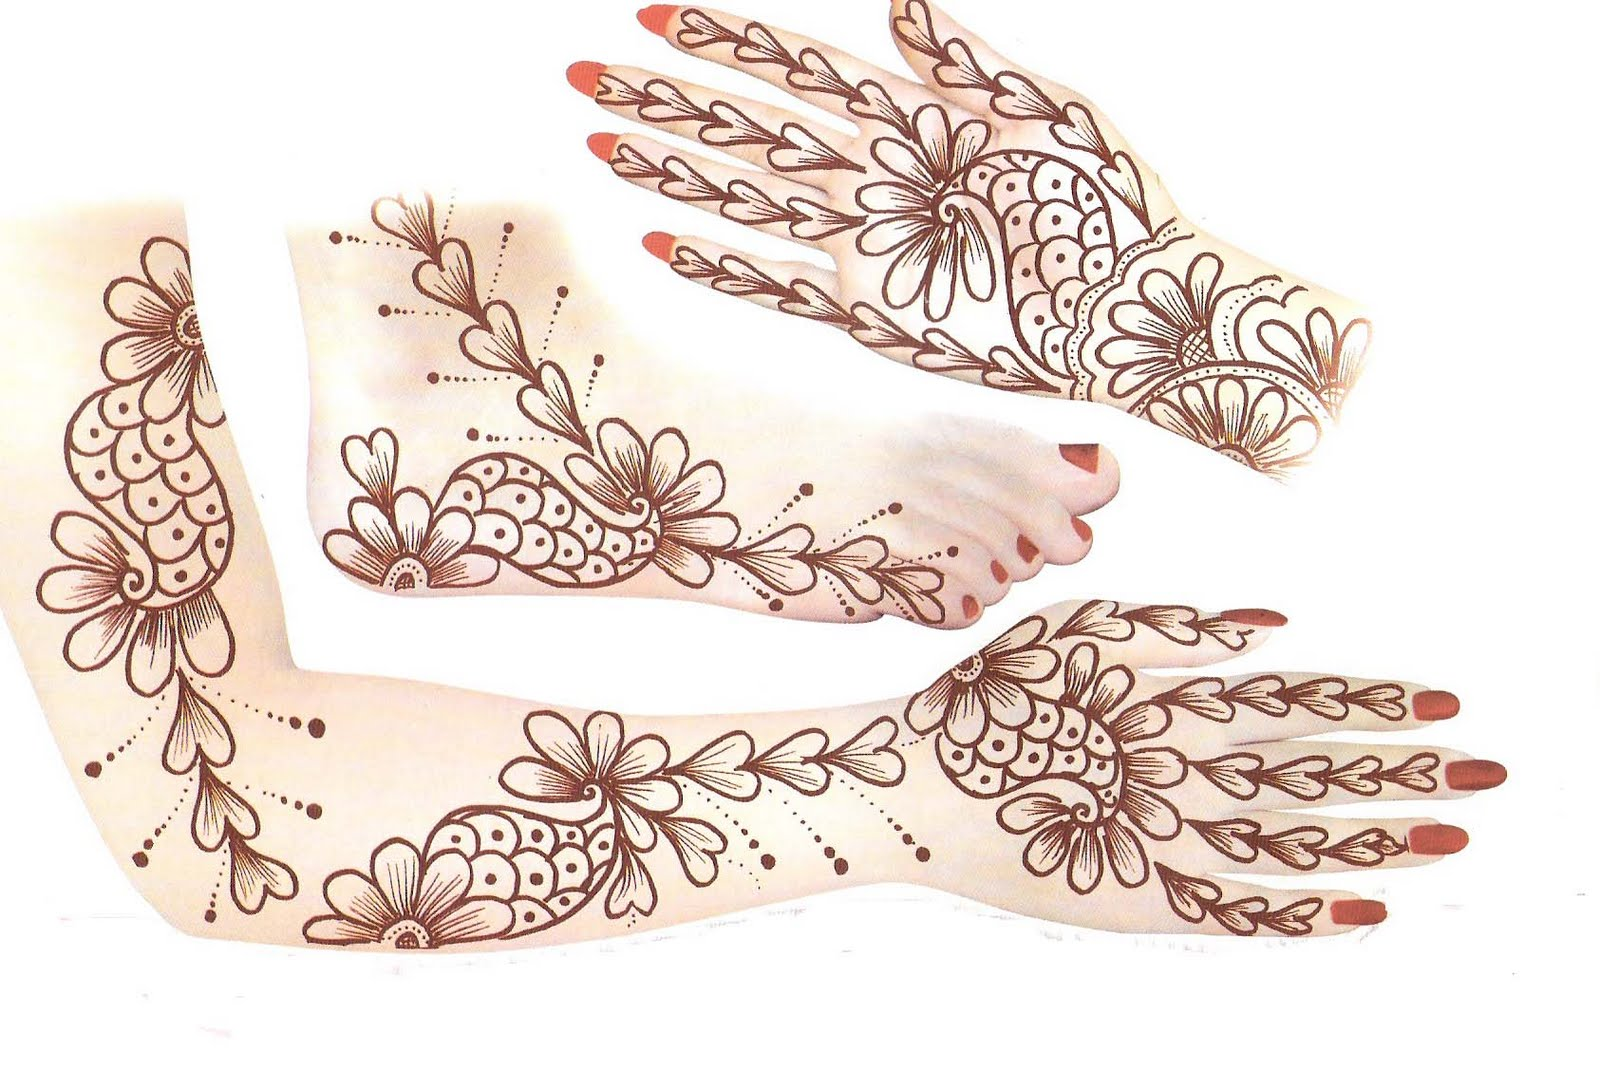 Bridal mehndi desings latest mehndi desings pakistani for Simple designs on paper